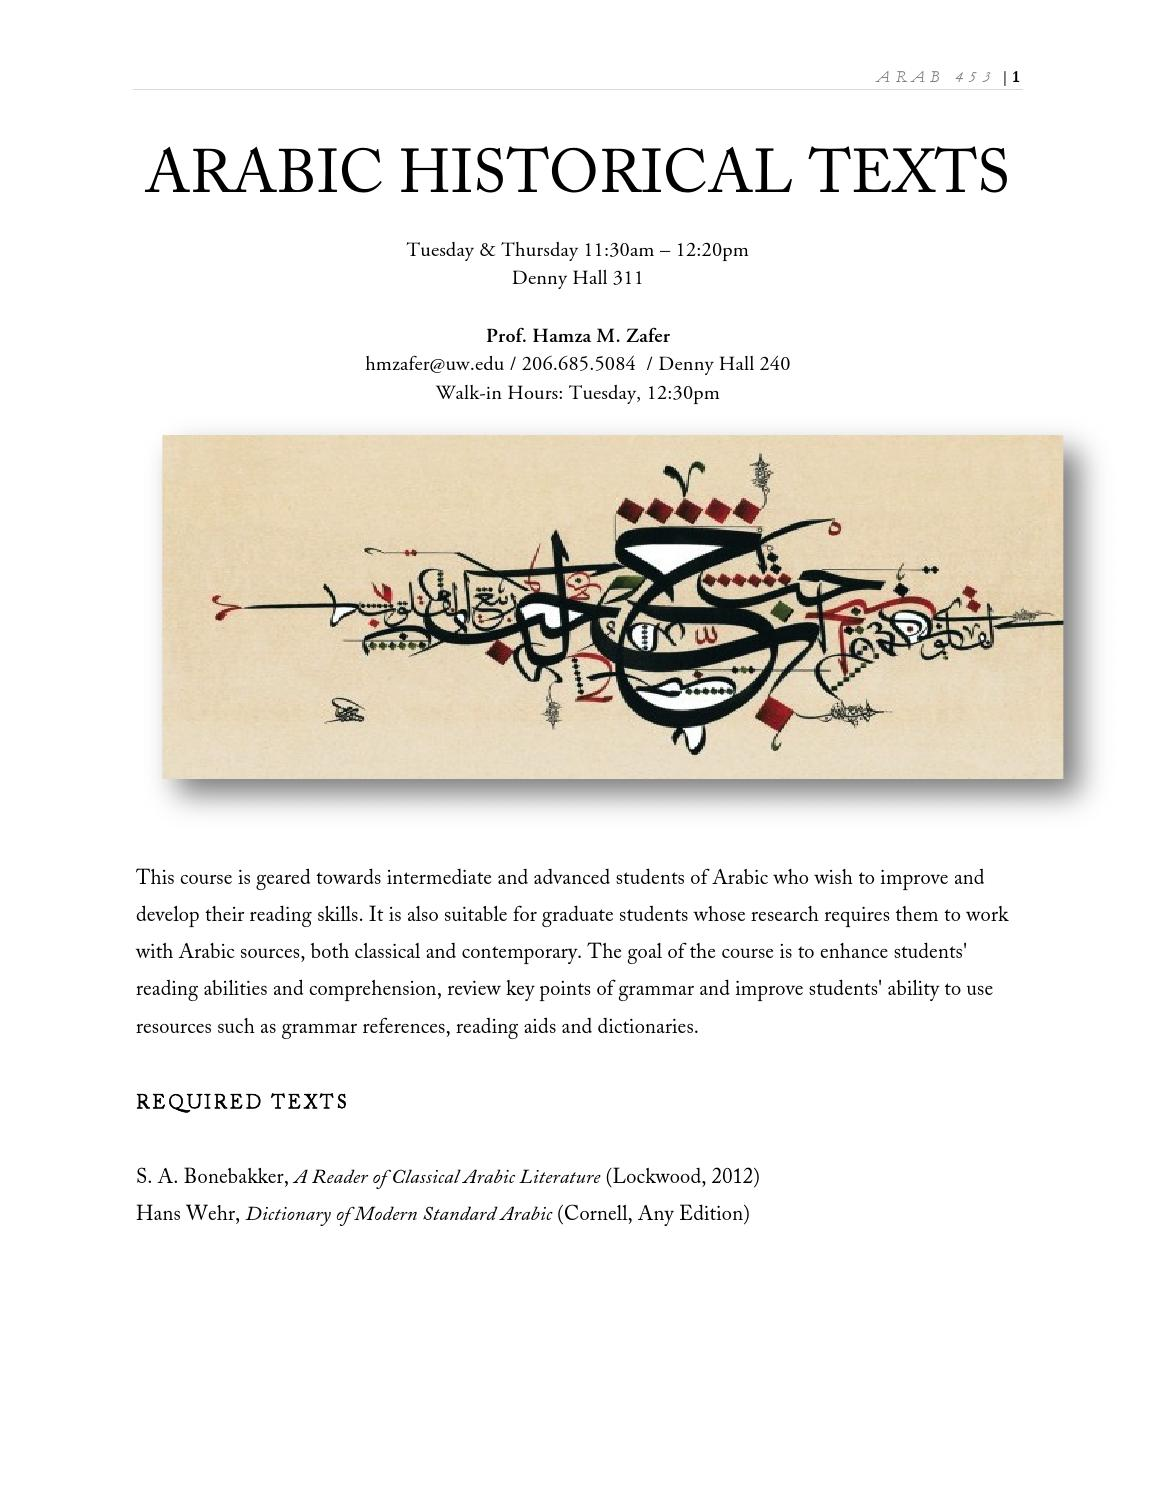 Arabic historical texts by H  M  Zafer - issuu